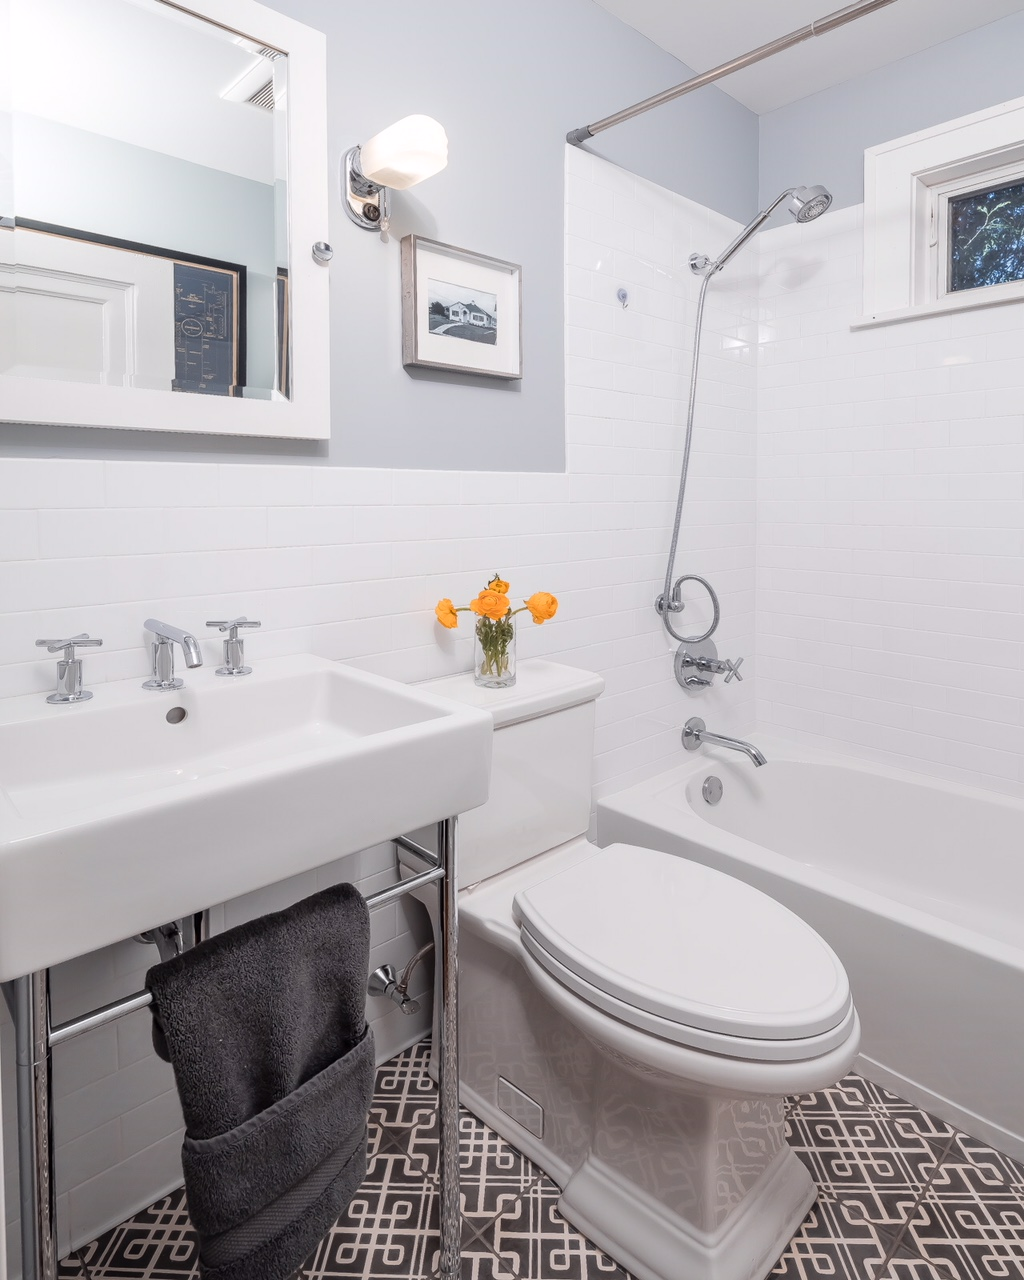 Images Bathrooms Makeovers: A Small Bathroom Makeover That You Won't Believe!